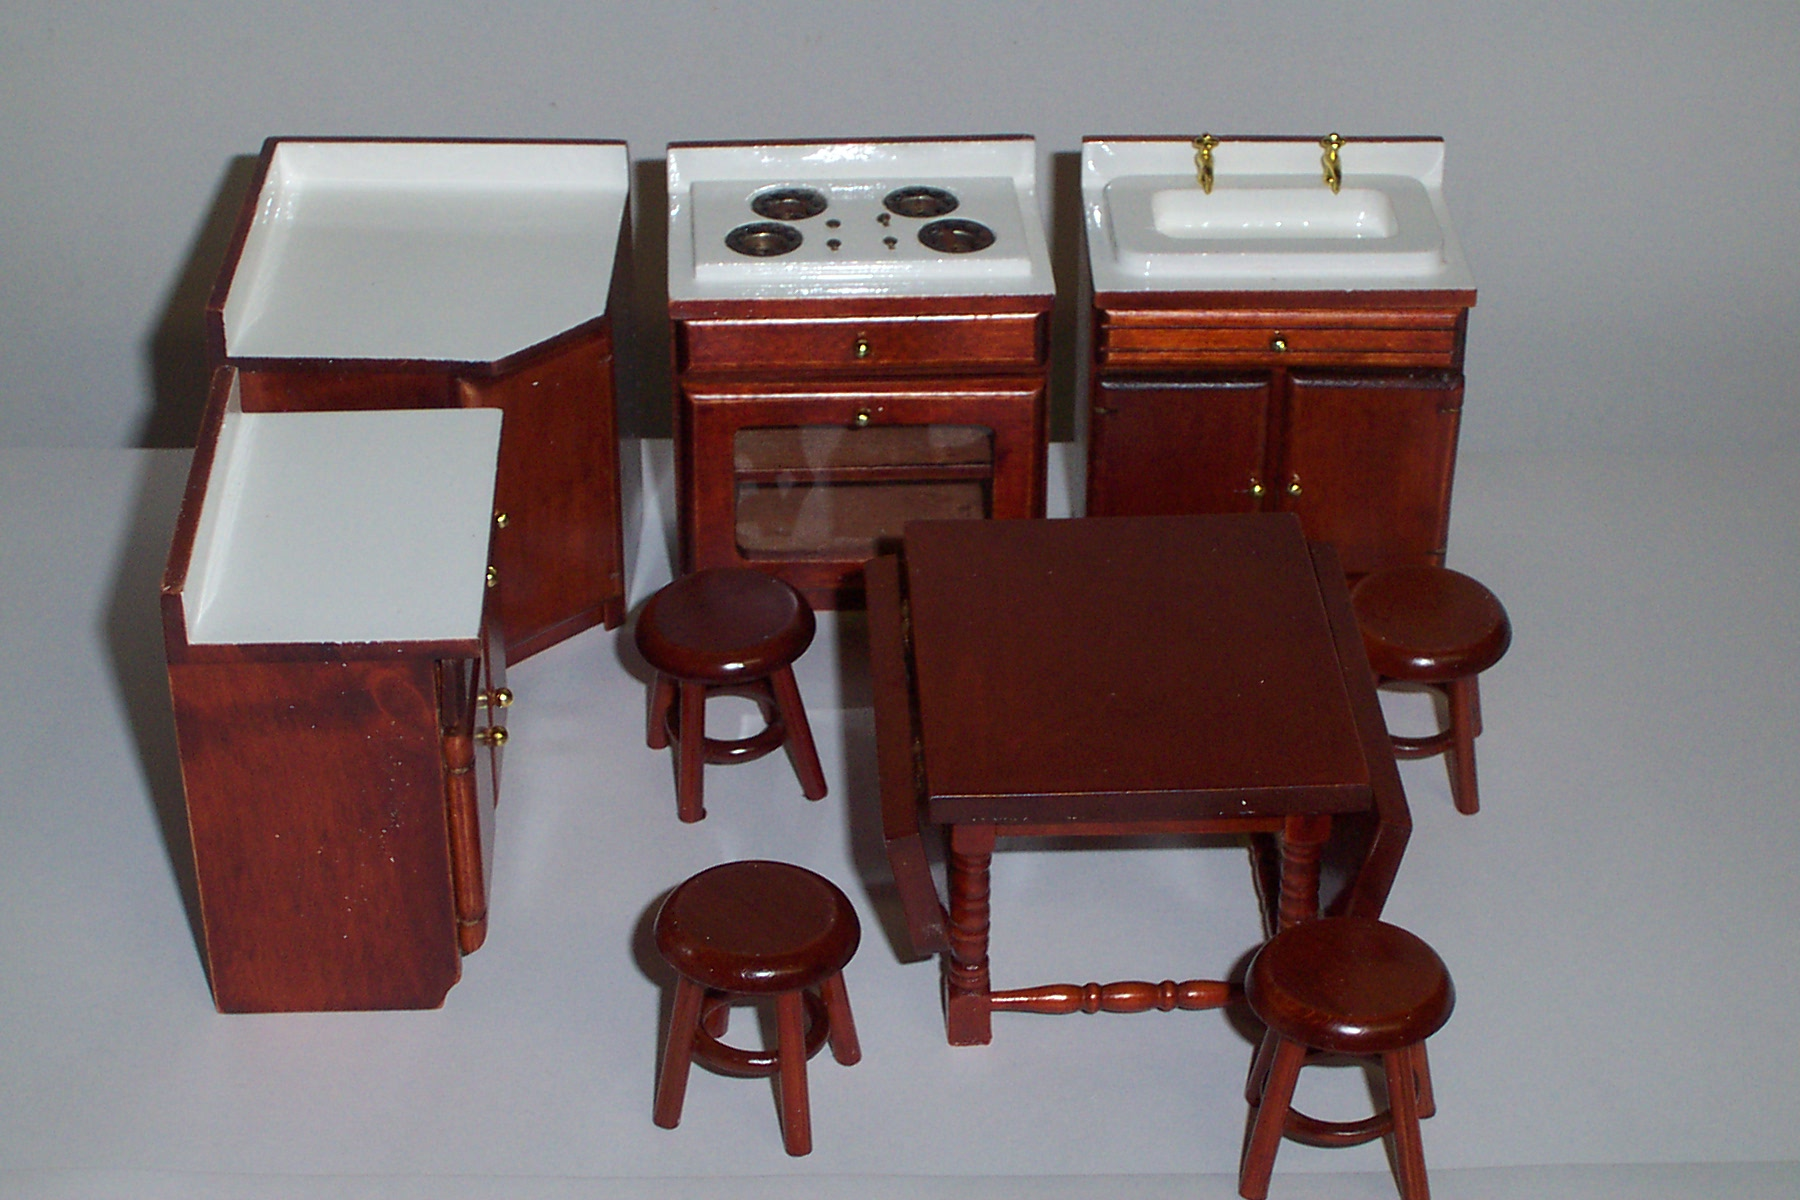 9 Piece Kitchen Set